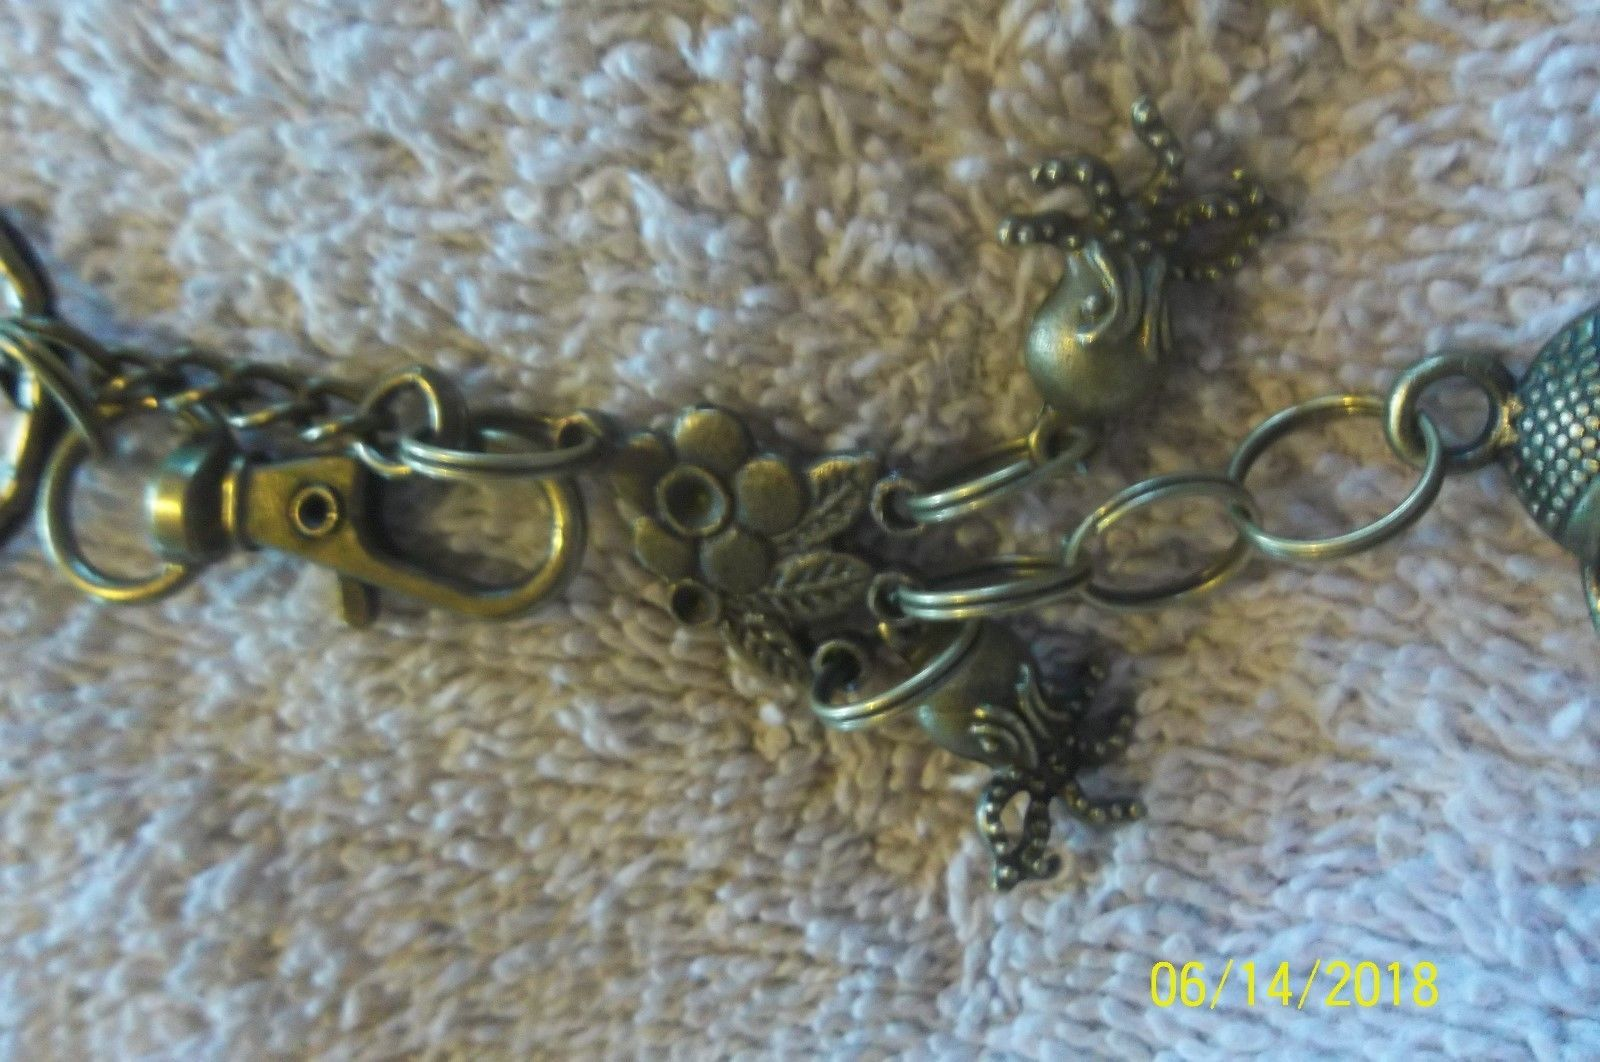 #purse jewelry bronze color keychain backpack filigree charms lot of 3 floral 21 image 8